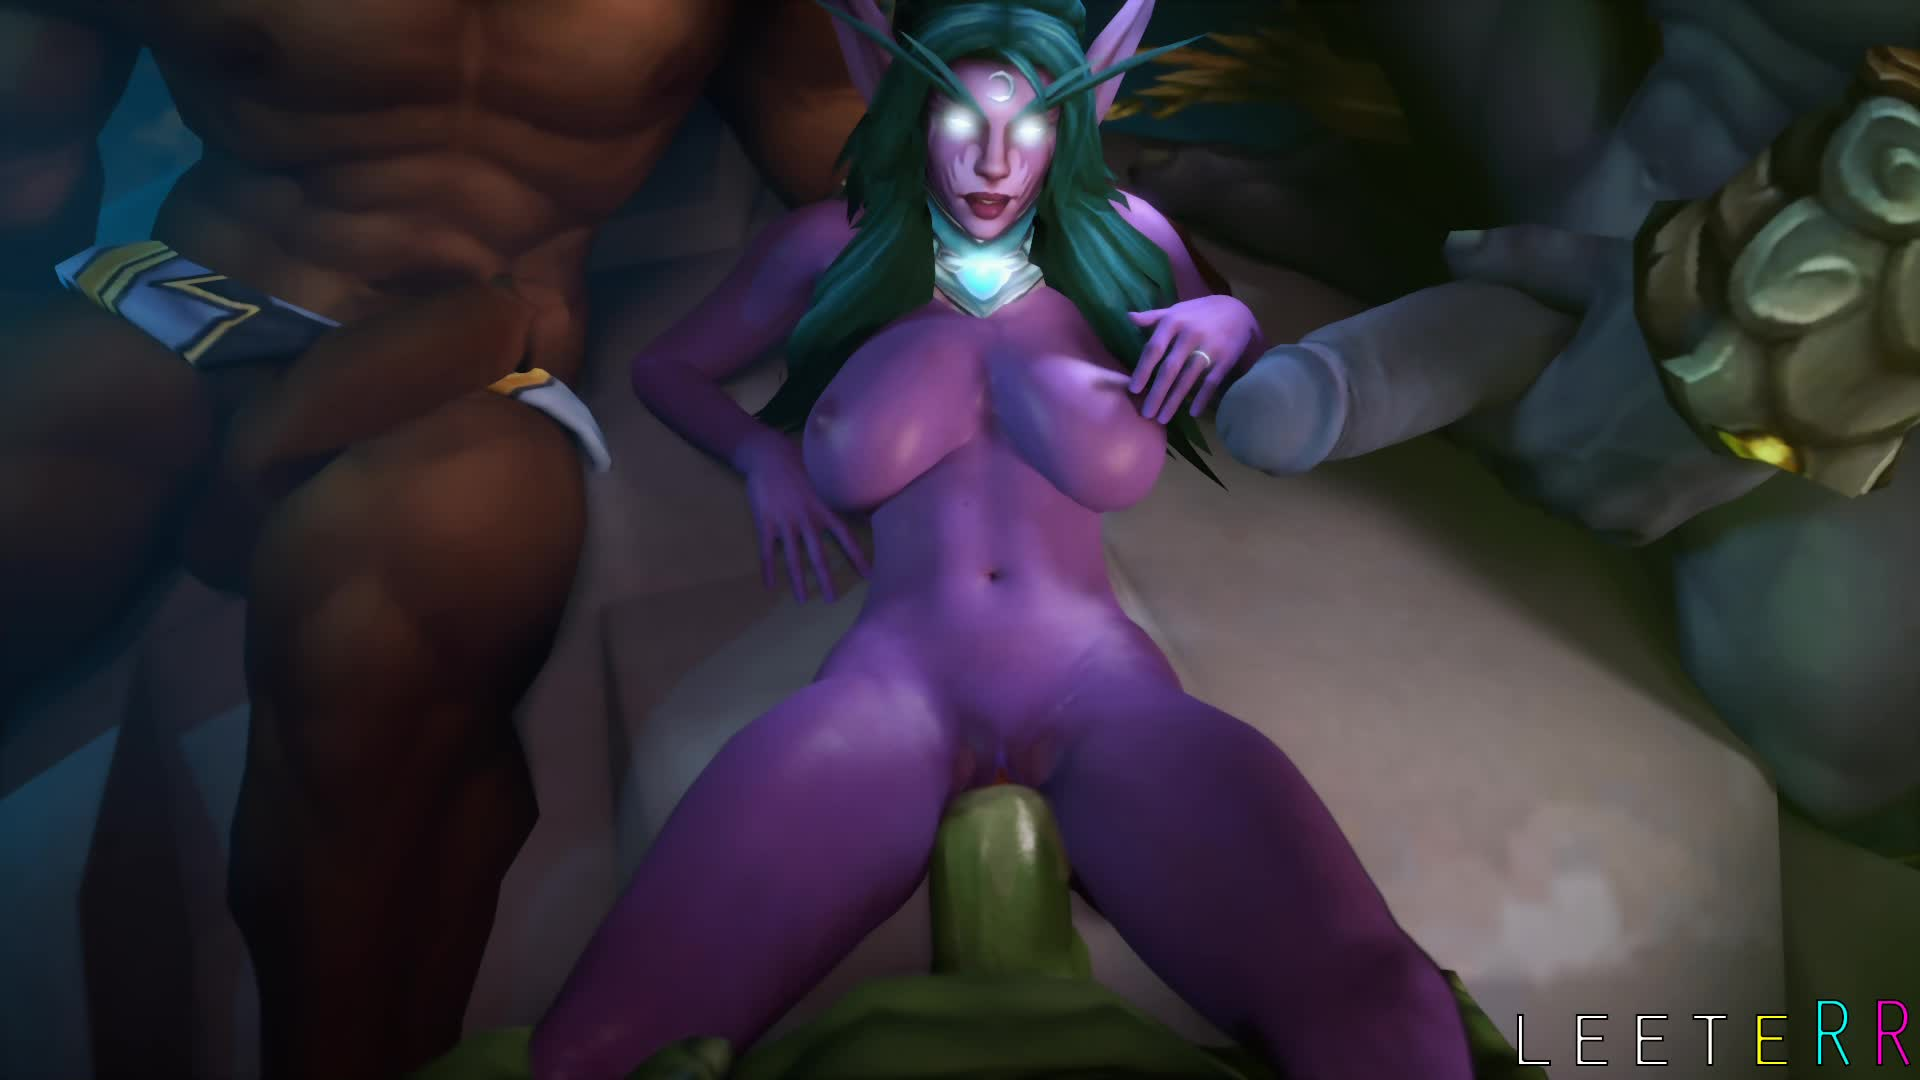 World of warcraft porn blog exploited movies